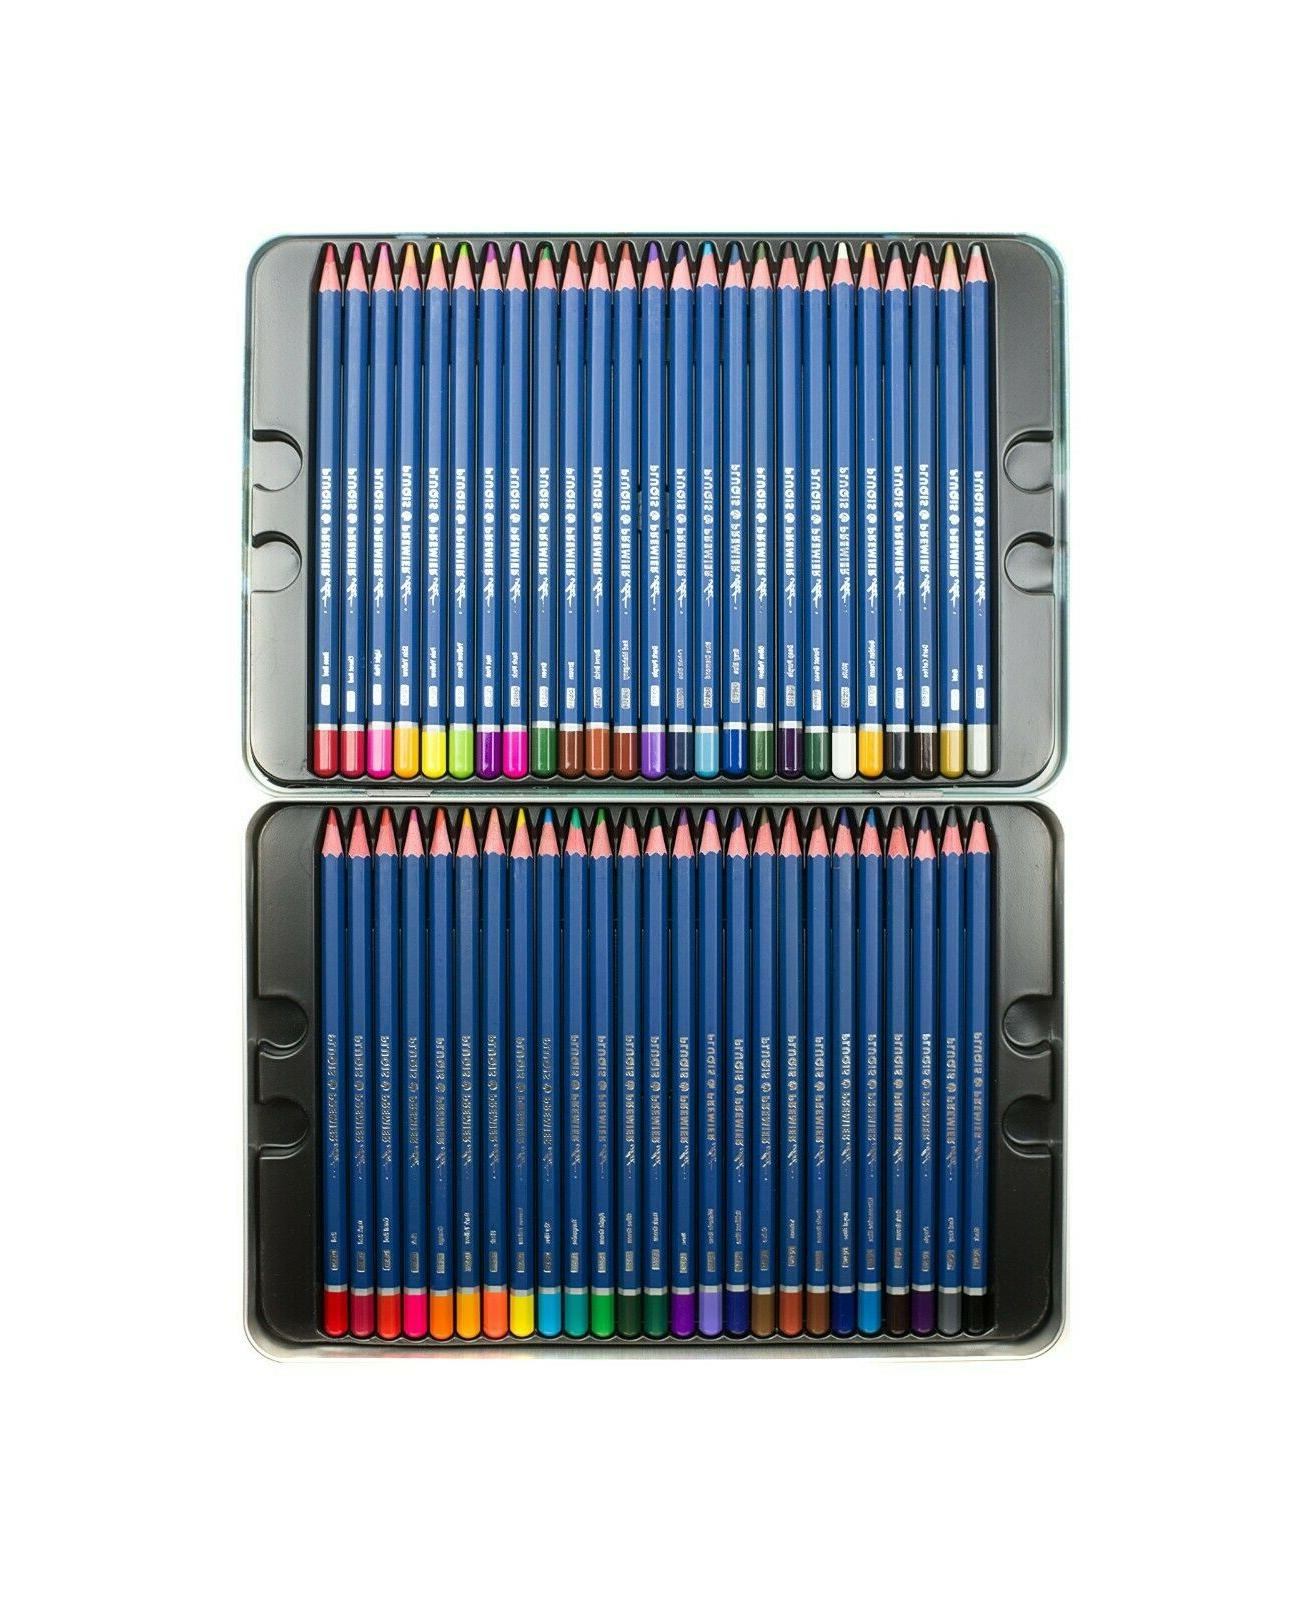 50 Pencils Platinum Artist Tin Case